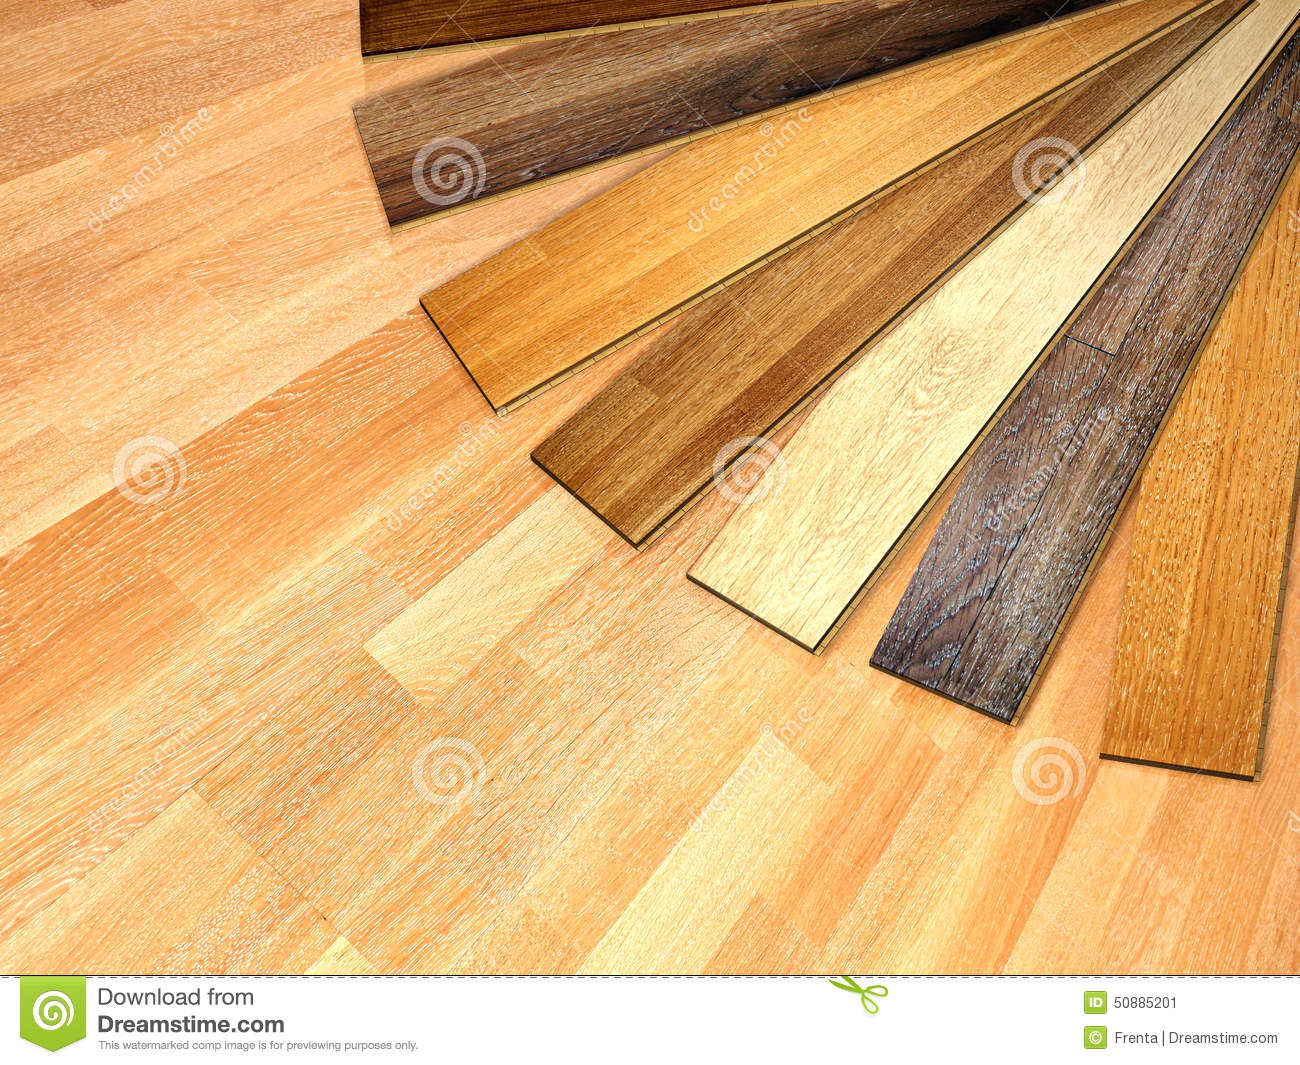 new oak parquet stock illustration image of flooring 50885201. Black Bedroom Furniture Sets. Home Design Ideas